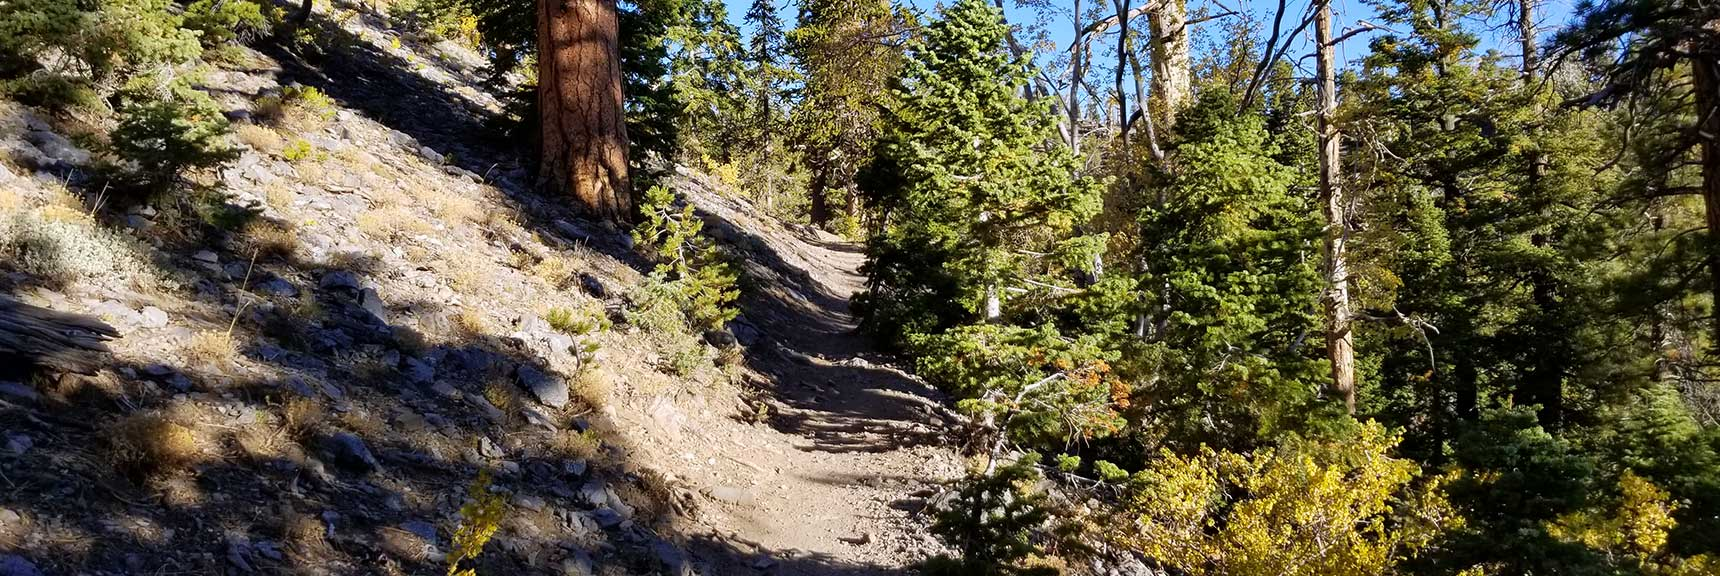 About 1/2 Mile Up the Bristlecone Pine Trail ight in Lee Cnyon, Mt. Charleston Wilderness, Nevada